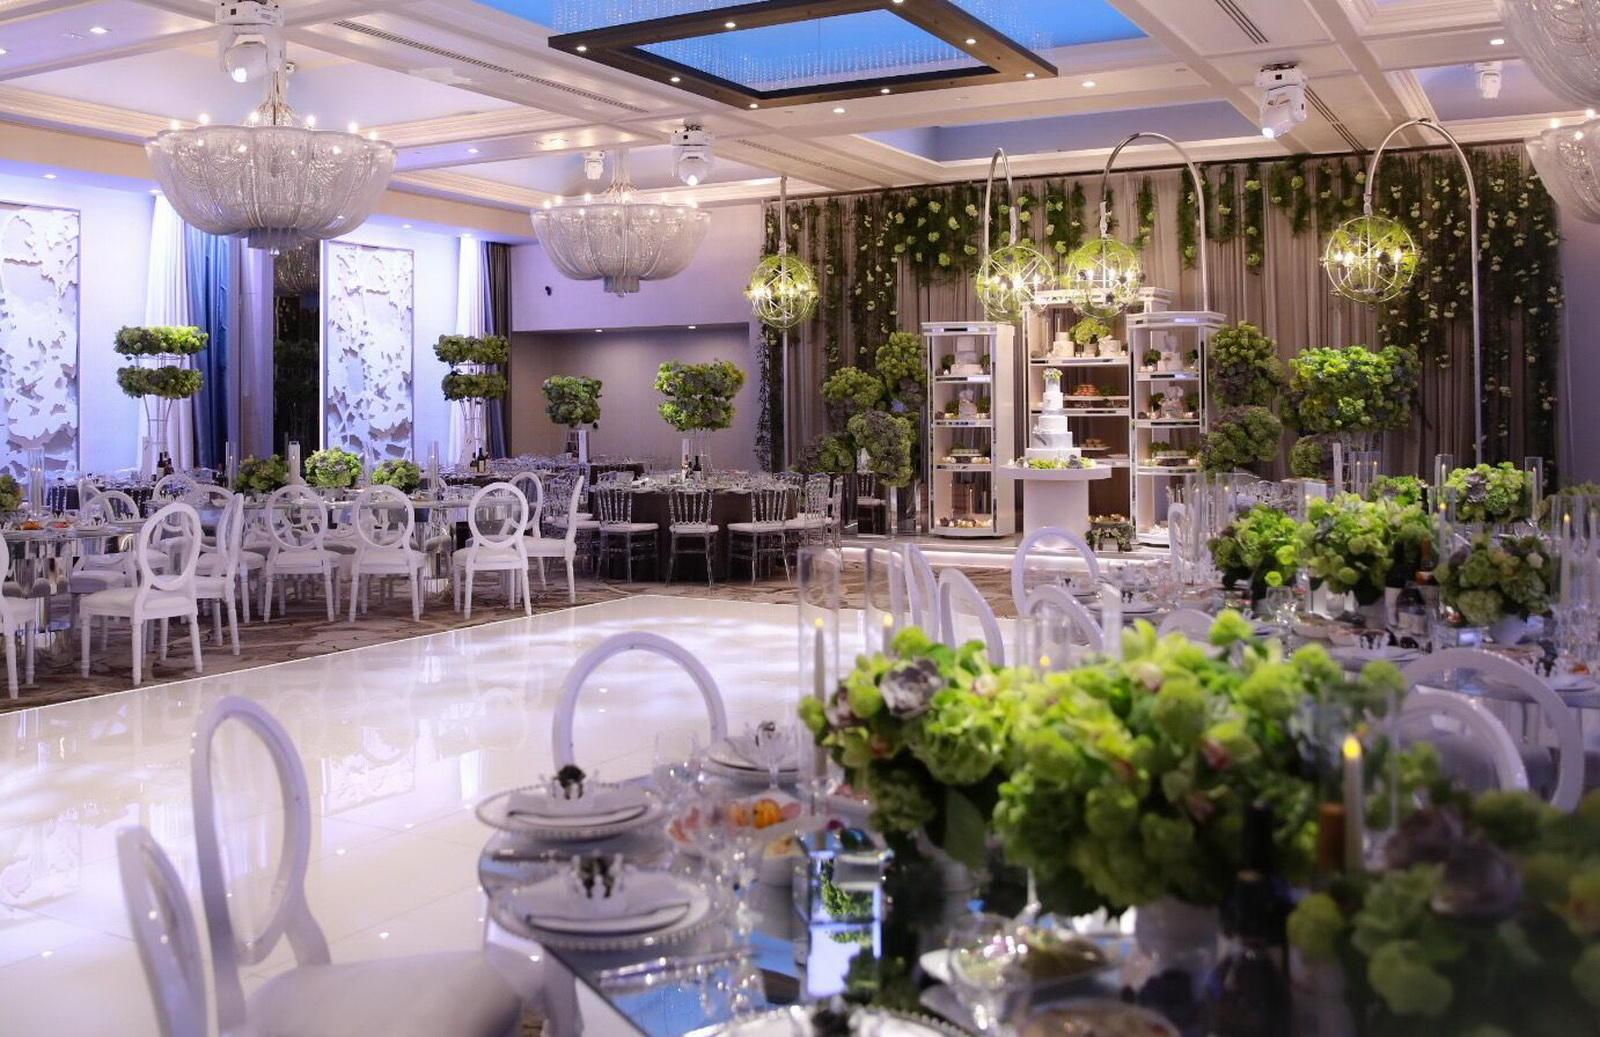 Local Wedding Venues Near Me: Anoush Banquet Halls & Catering Coupons Near Me In